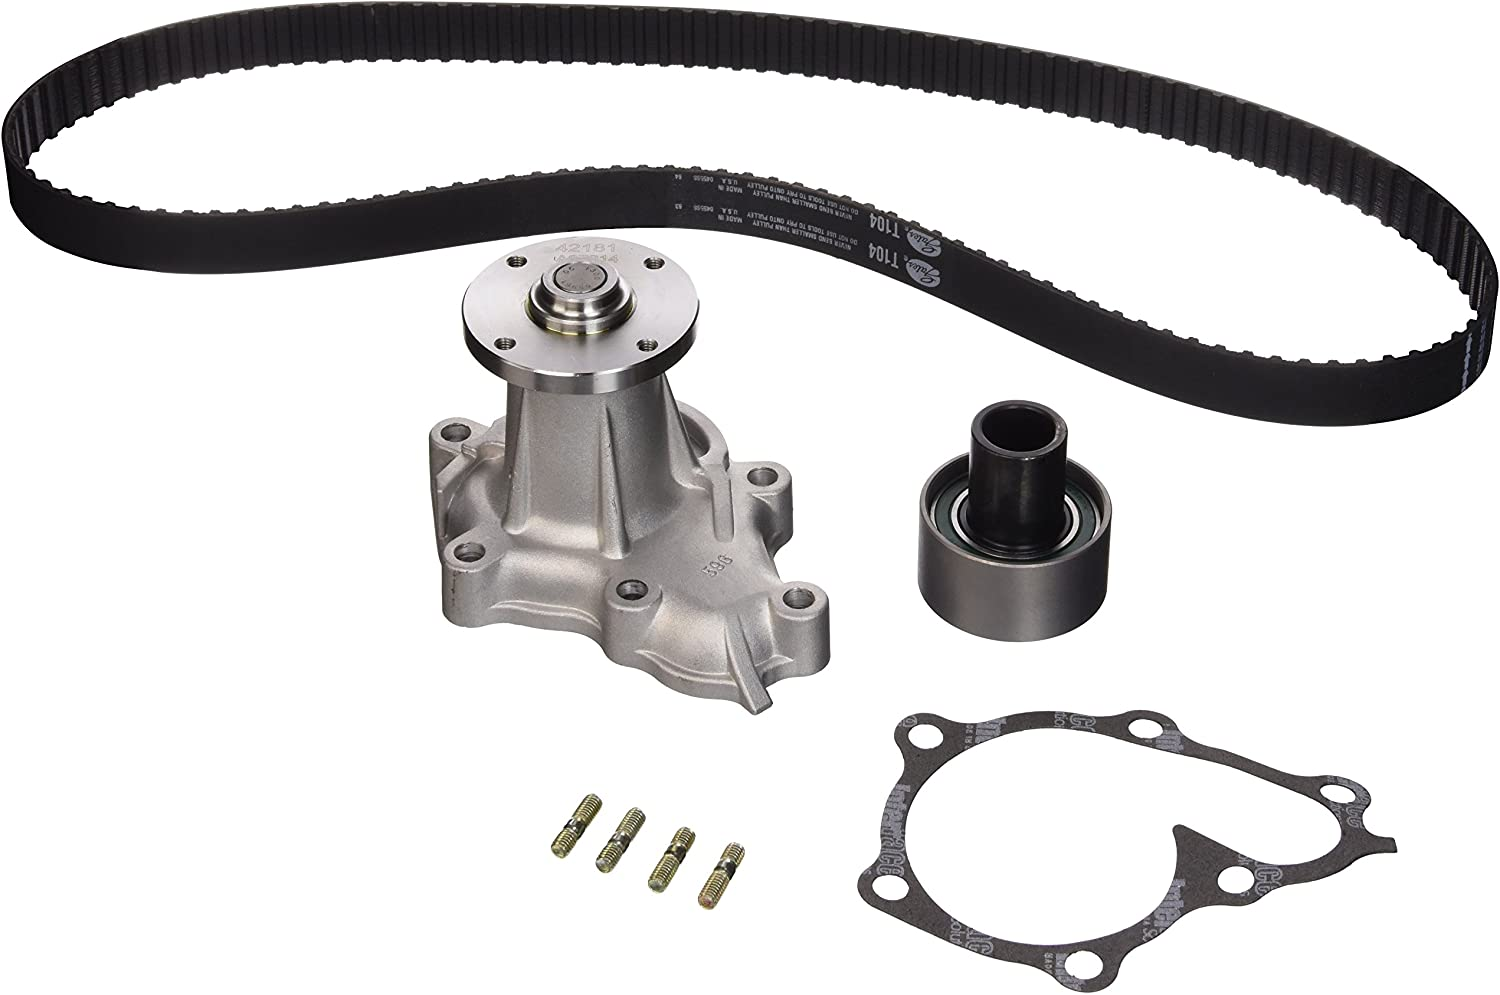 Online Automotive TBWPCNXSA19D 3011 Timing Belt Kit with Water Pump